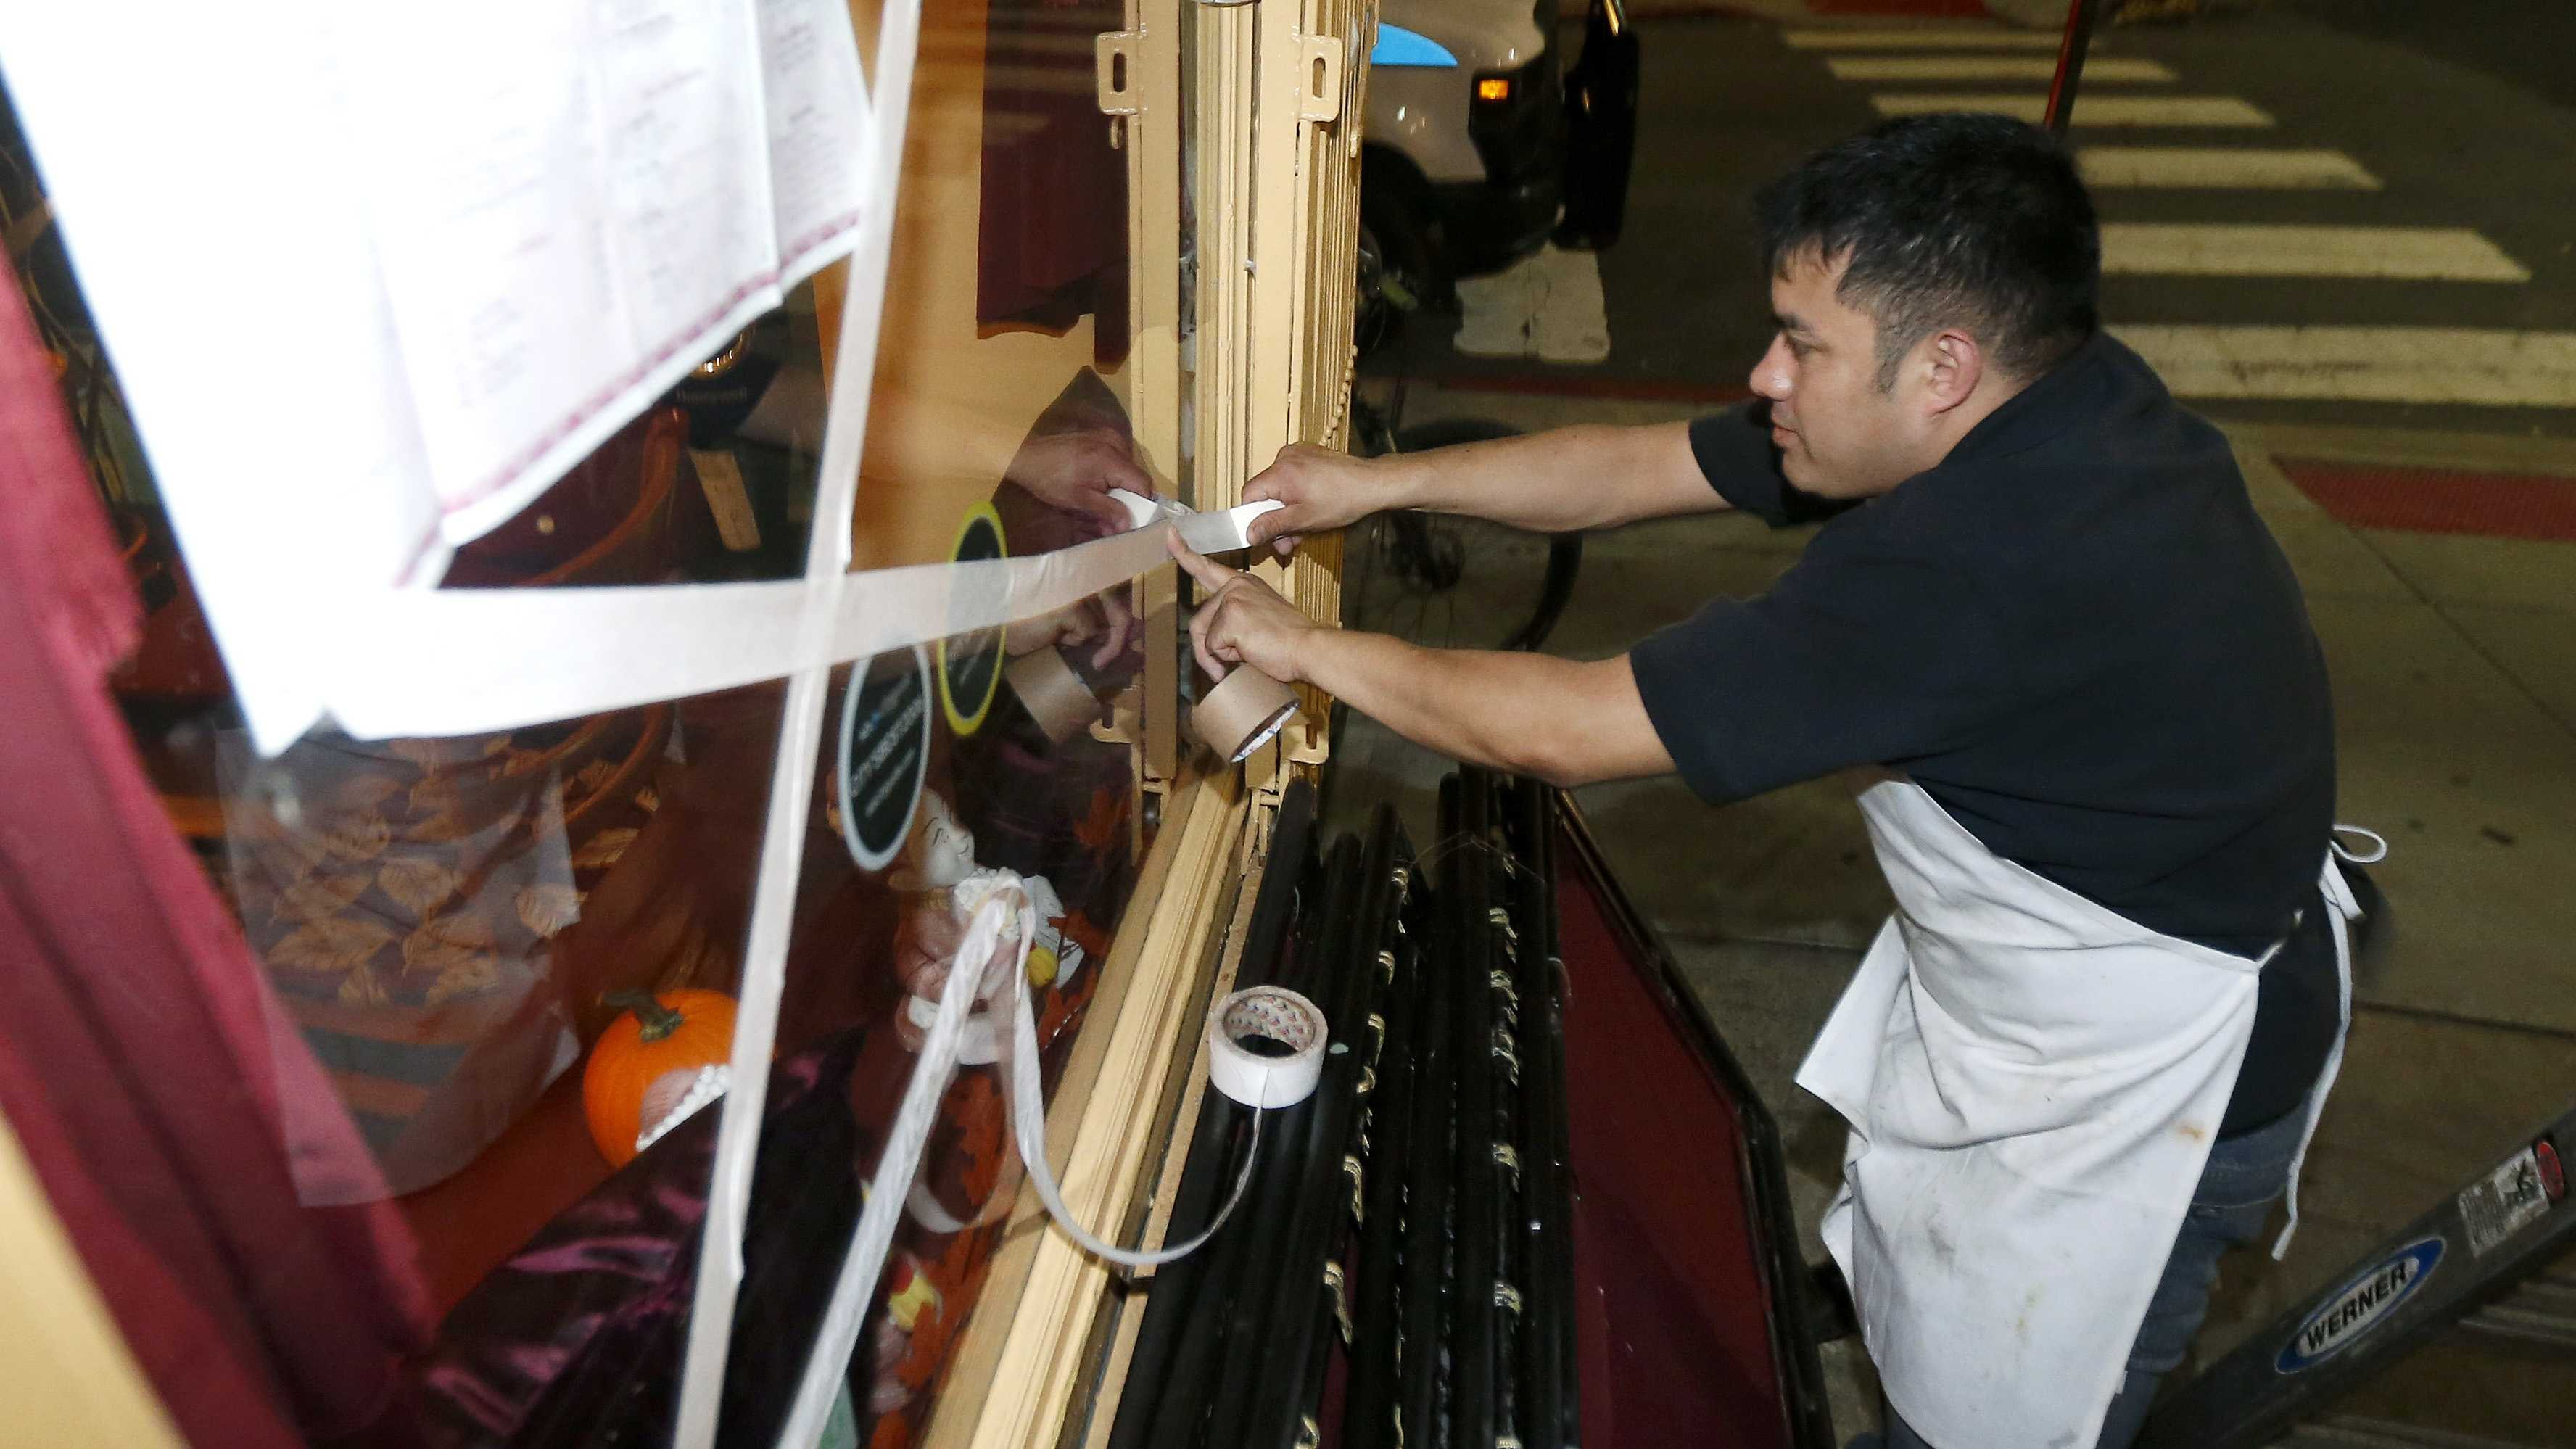 Oswaldo Falleres puts tape on the window of a restaurant in preparation for the arrival of superstorm Sandy, Sunday, Oct. 28, 2012, in Hoboken, N.J.